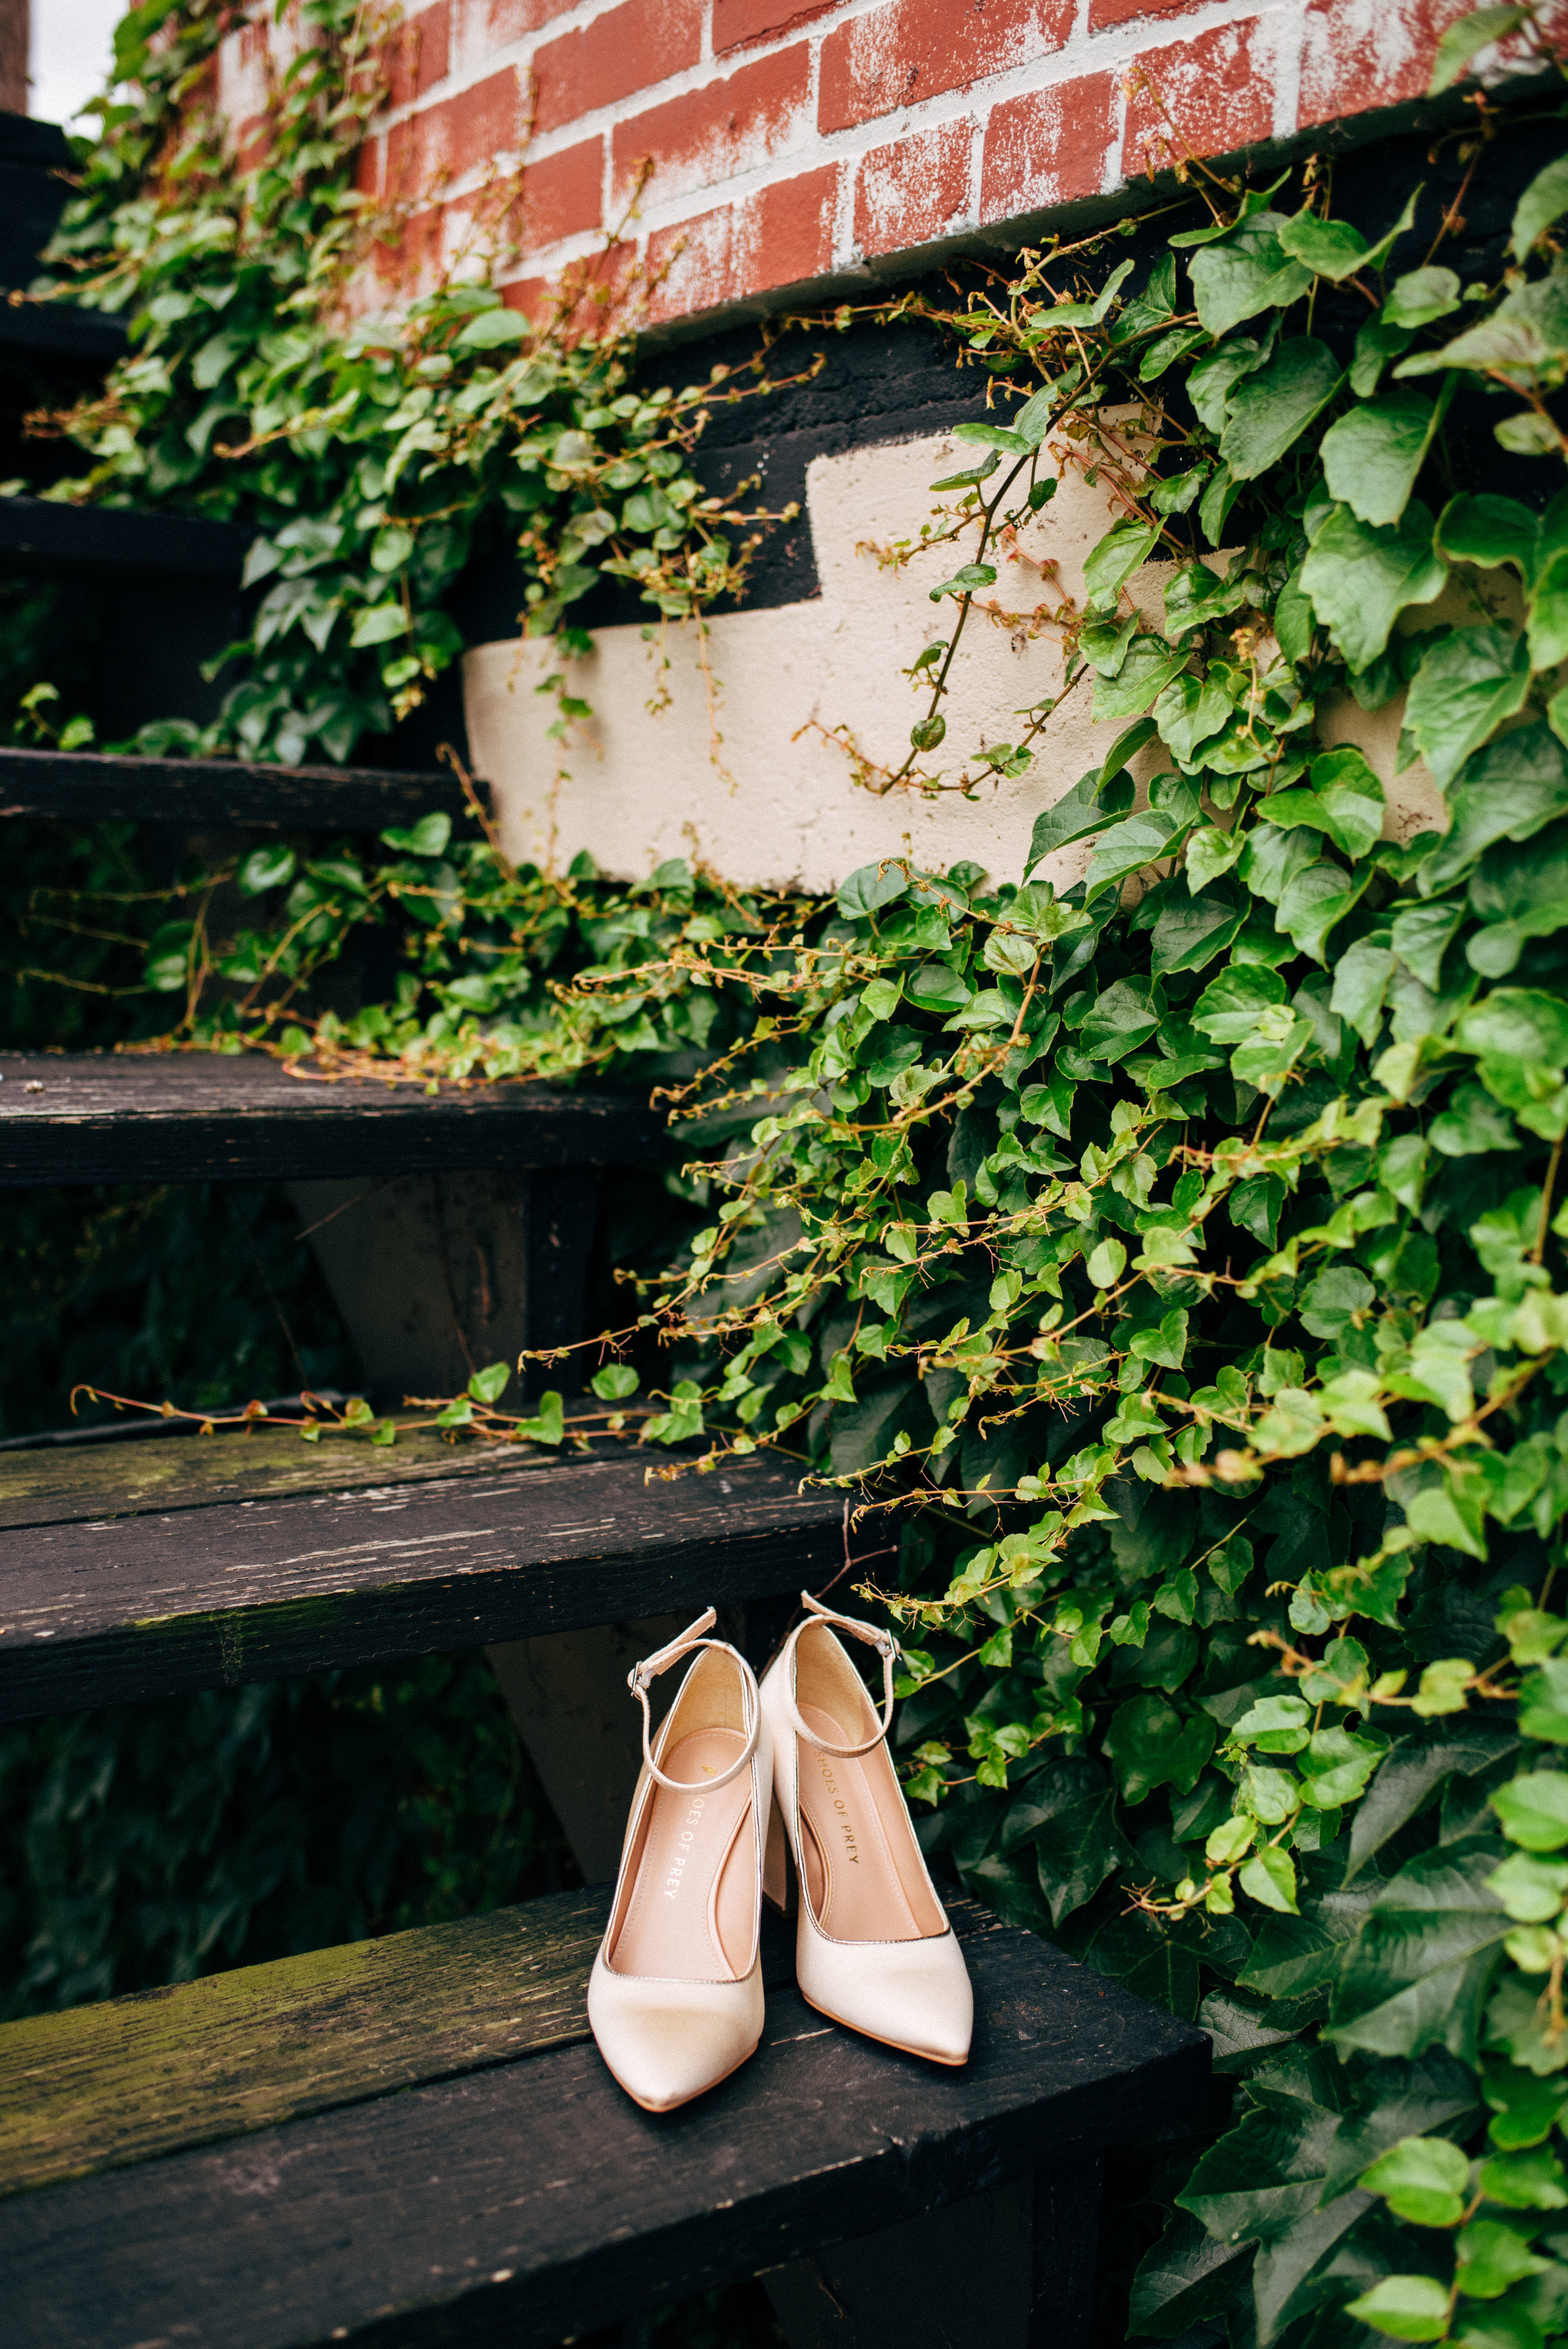 Bride's wedding shoes on a step with ivy and brick in background